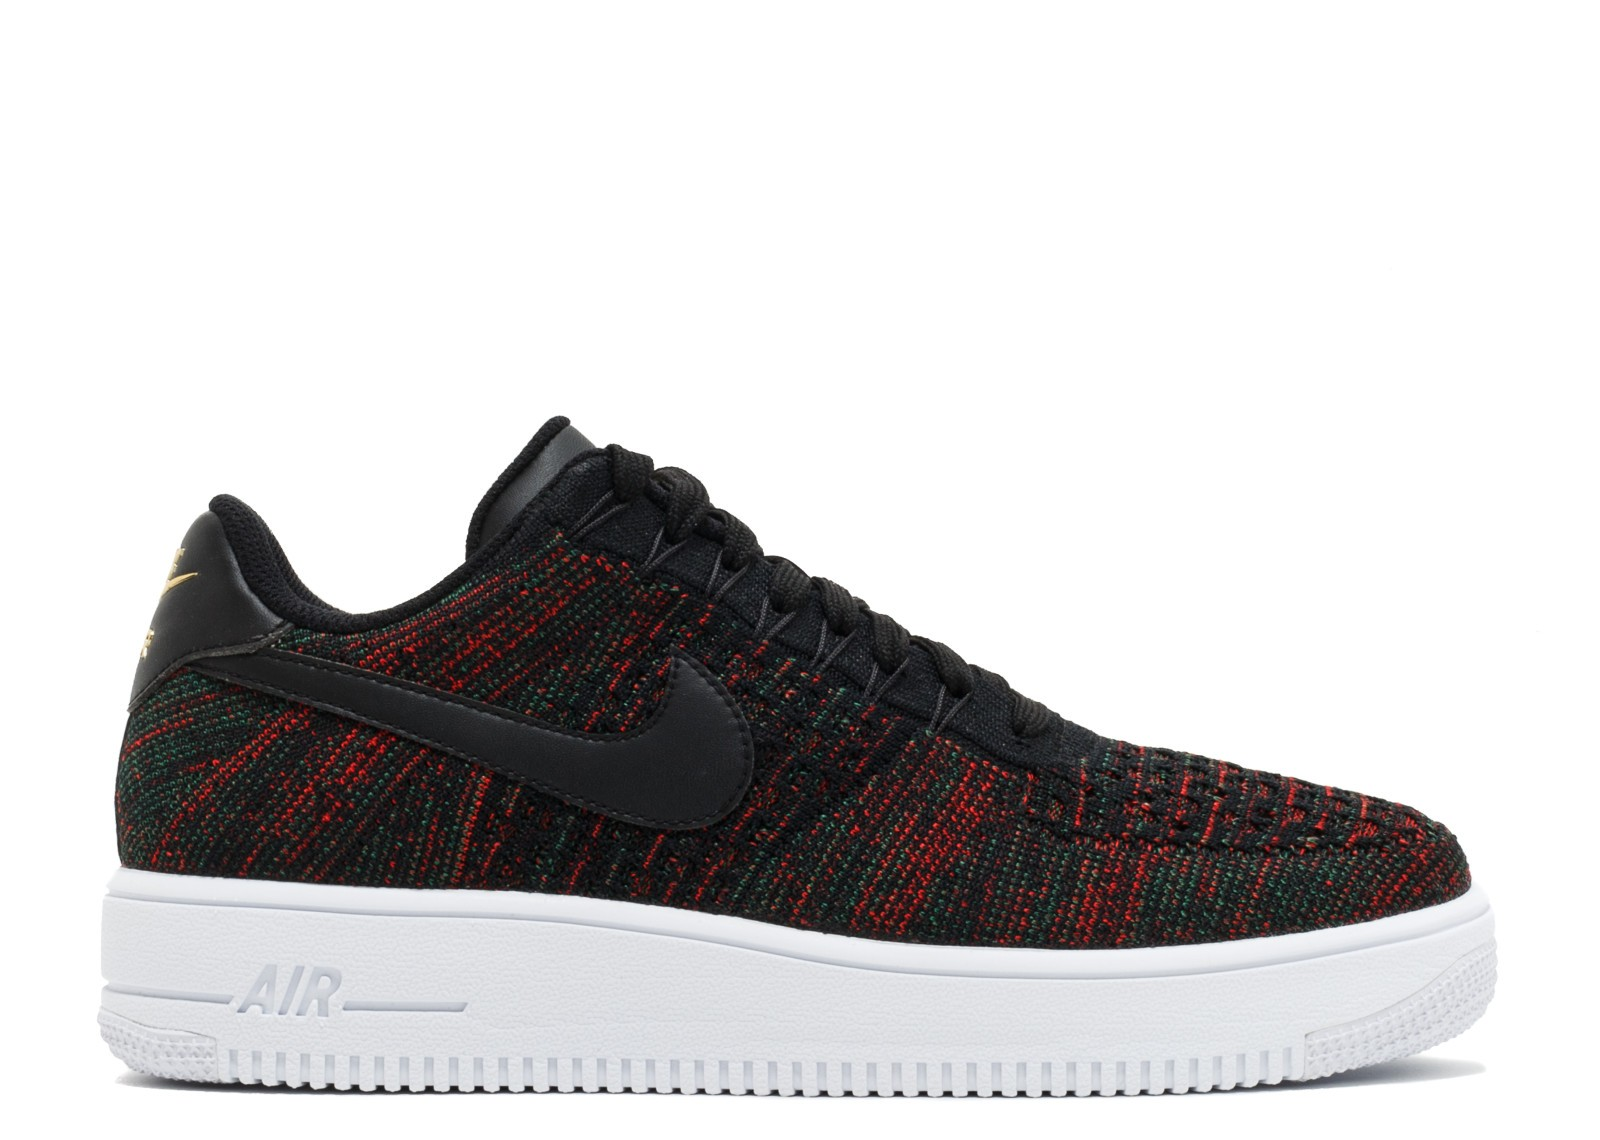 Nike Hombre AF1 Ultra Flyknit Low (Negras/Metallic Gold) 817419-005